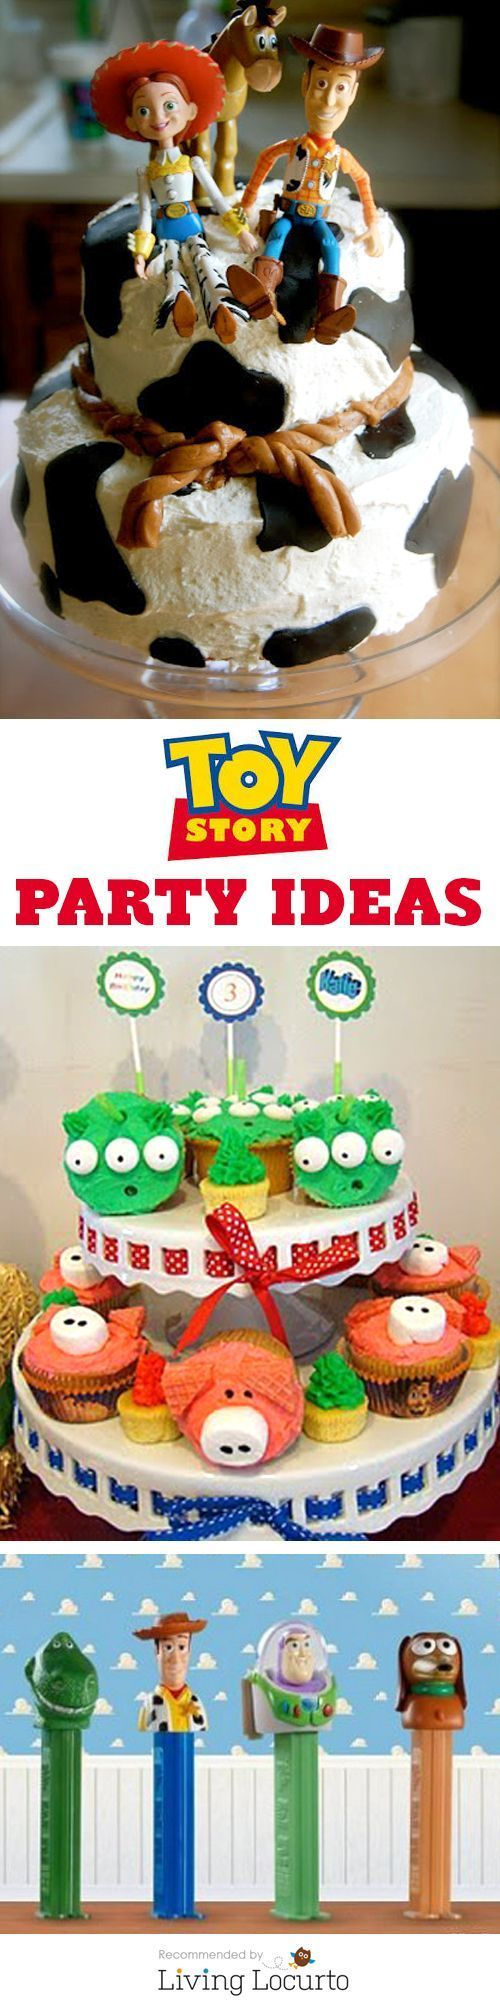 Toy Story Party ideas! Disney Birthday Party Ideas for kids. Cute Woody, Buzz Light Year and the gang themed cakes, cookies, cupcakes, free party printables, party favors, crafts and kid games! LivingLocurto.com via @livinglocurto